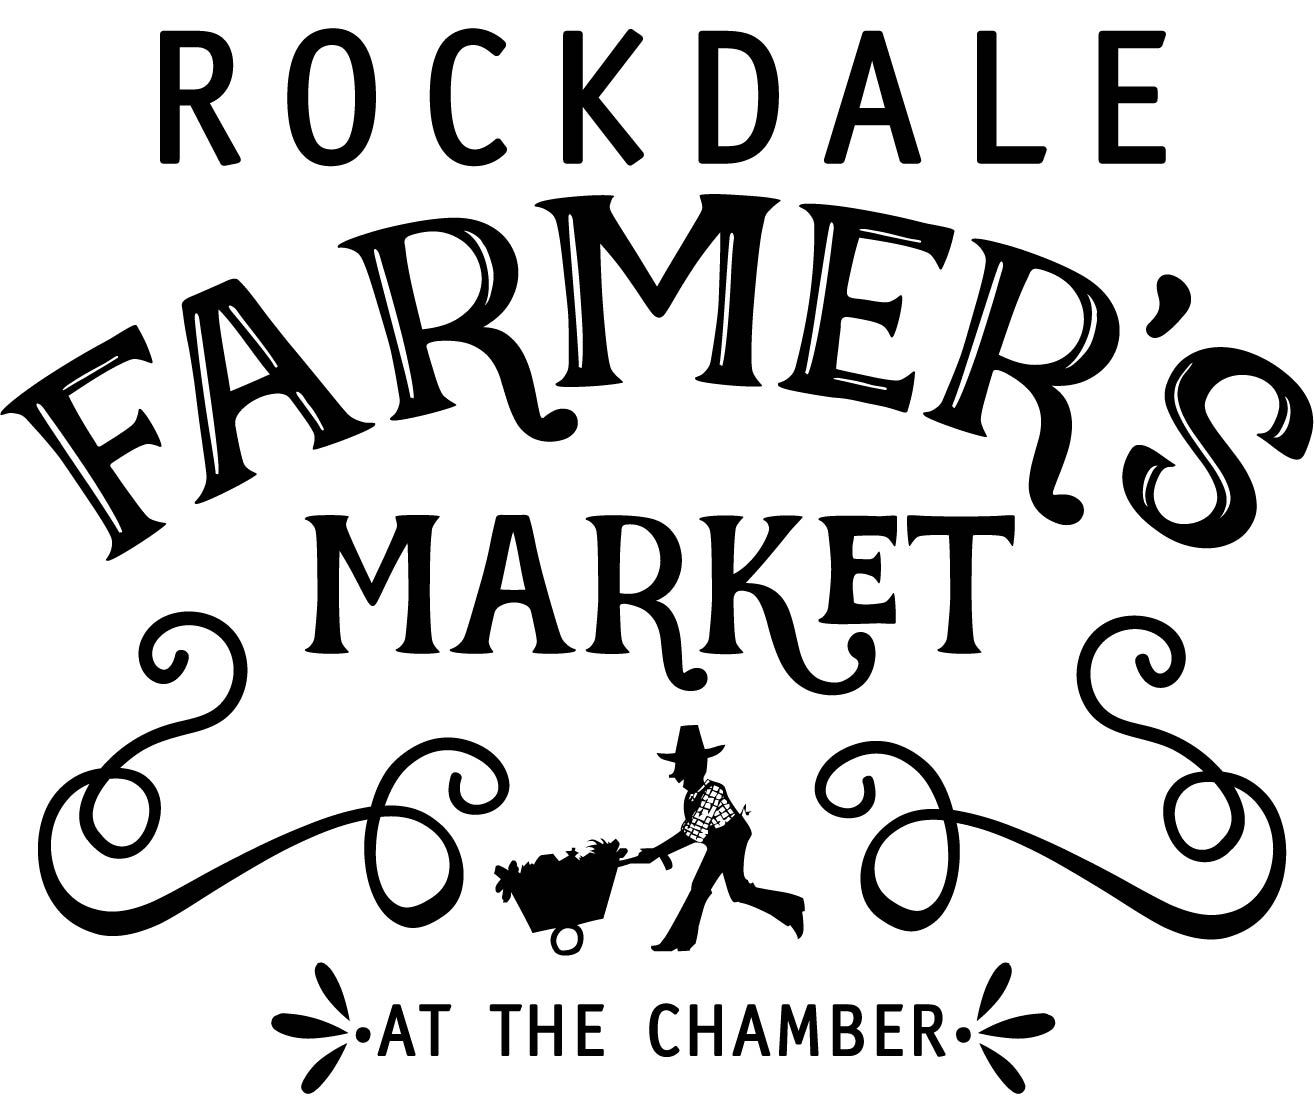 Rockdale Farmer's Market - Saturdays 8am-Noon March thru October at the Chamber Office